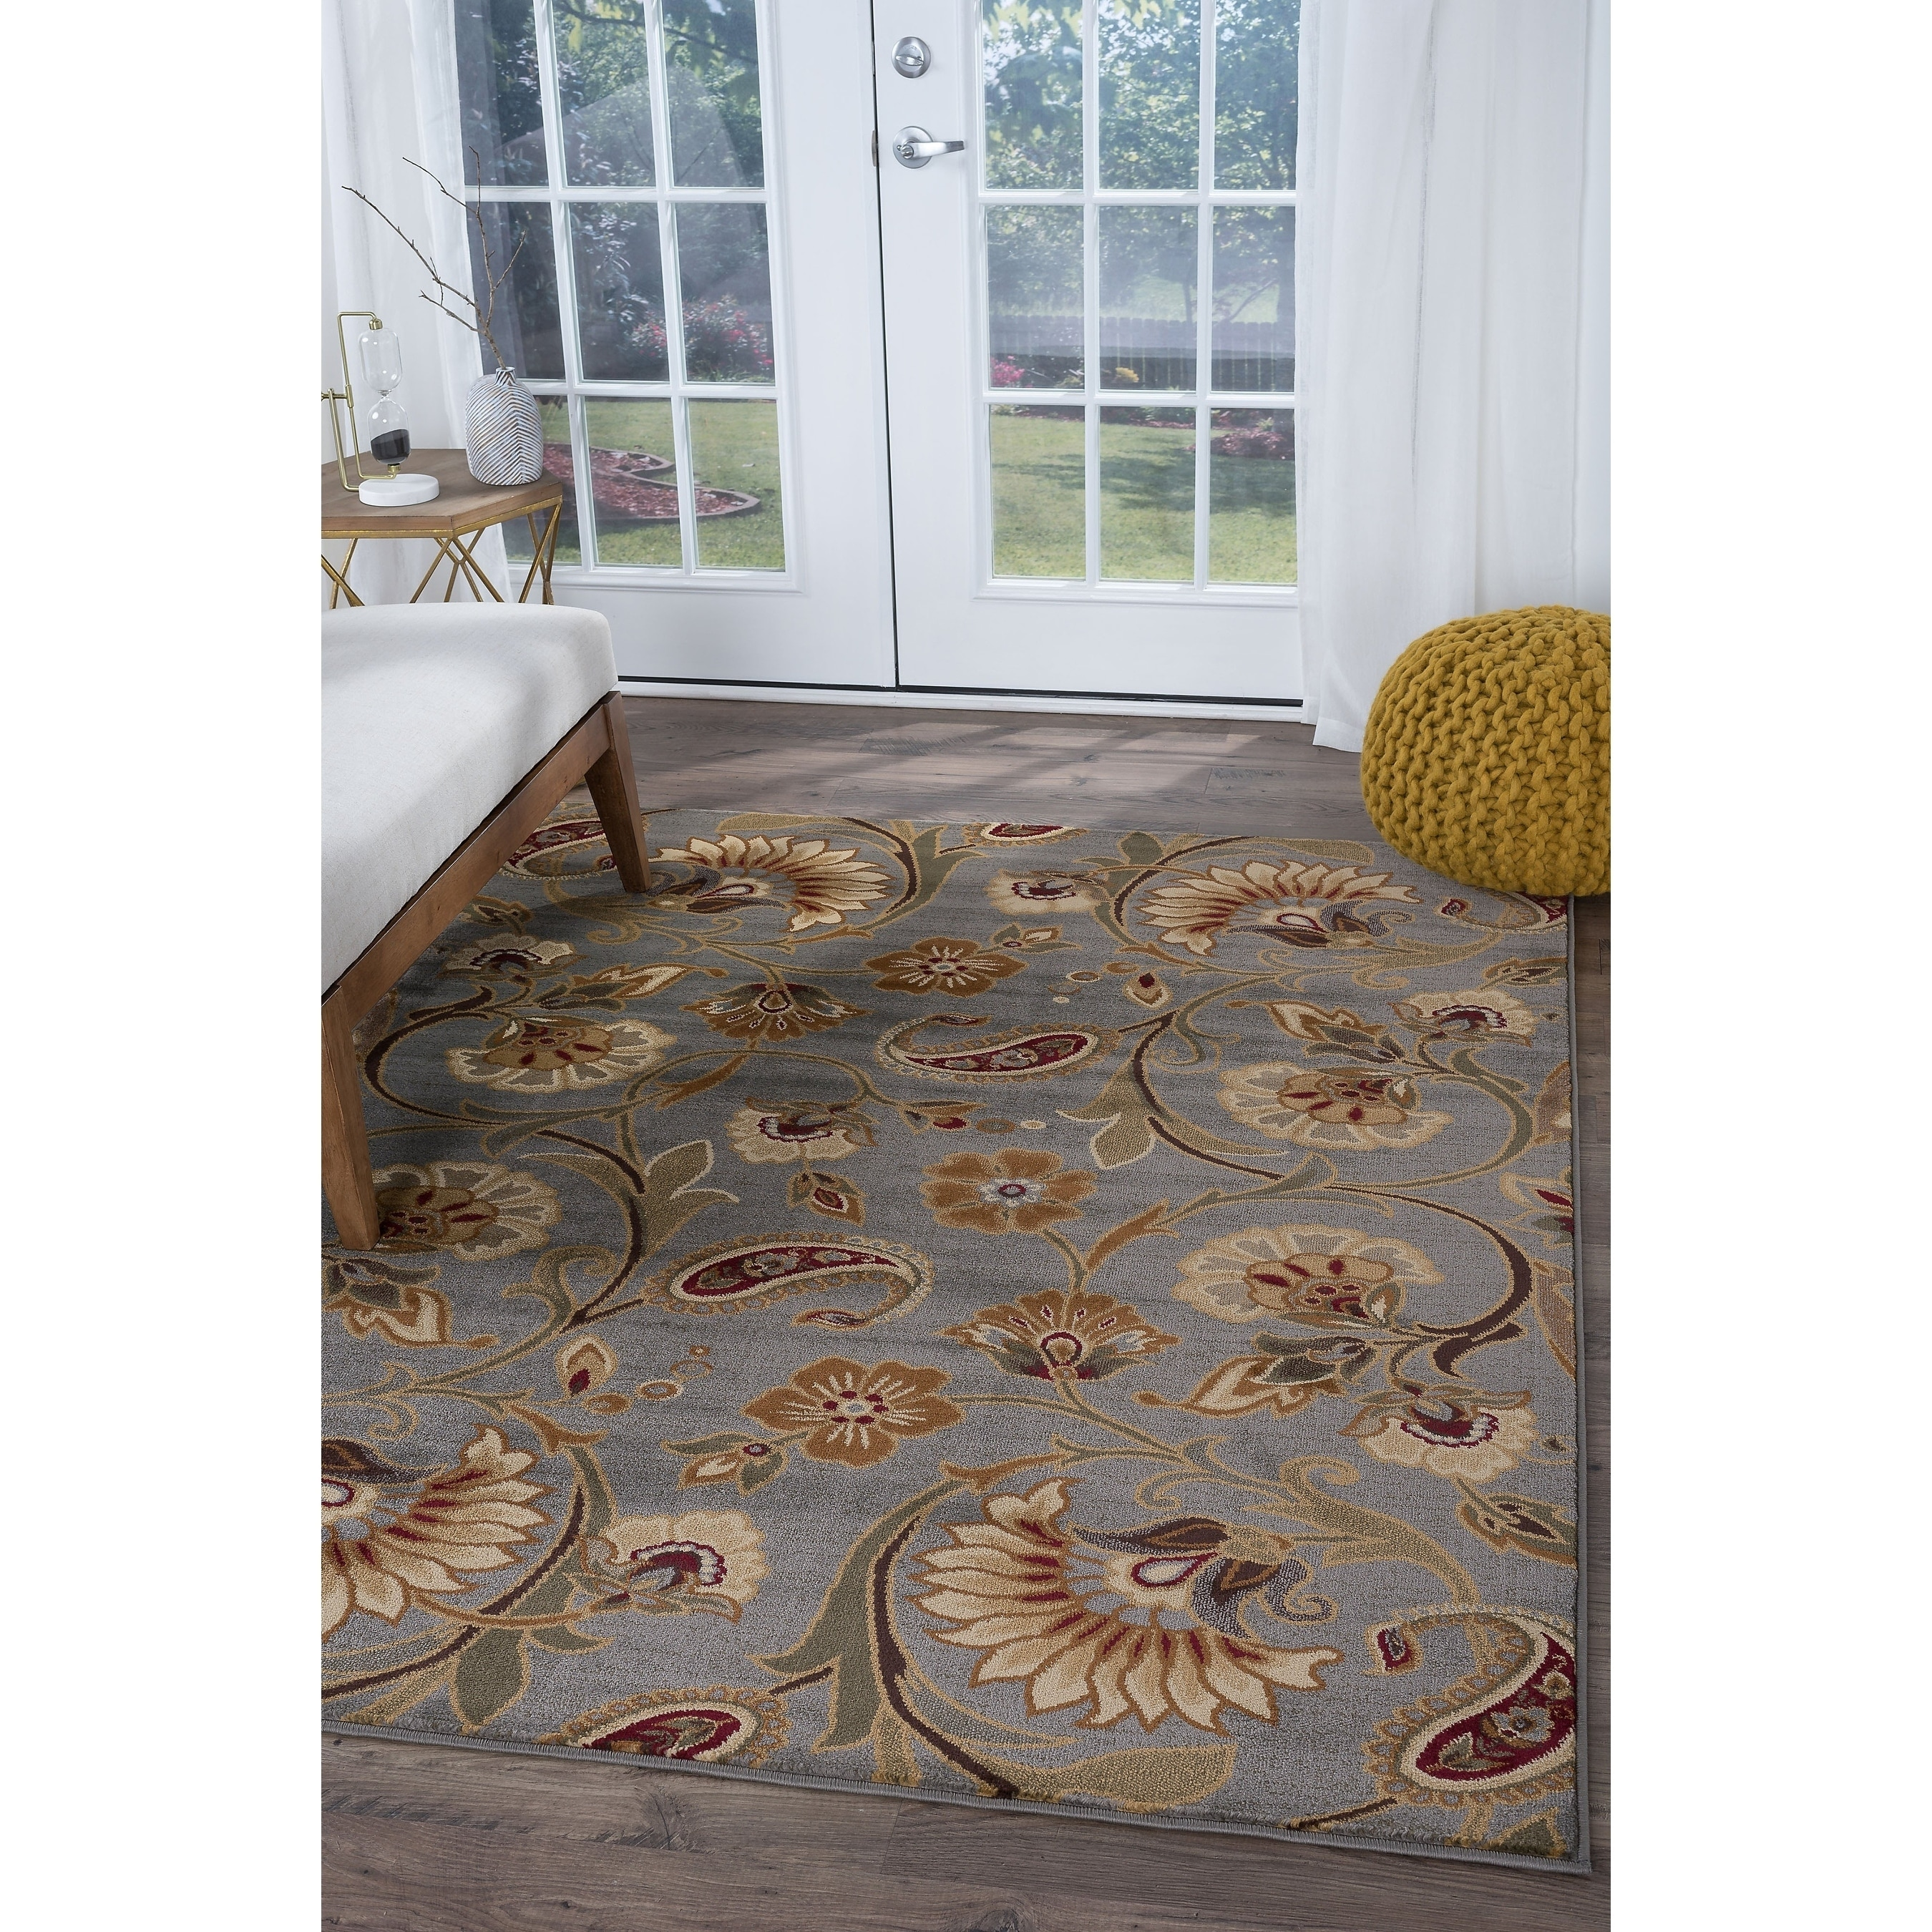 Alise Infinity Blue Area Rug (5'3 x 7'3) - 5'3 x 7'3 (Inf...